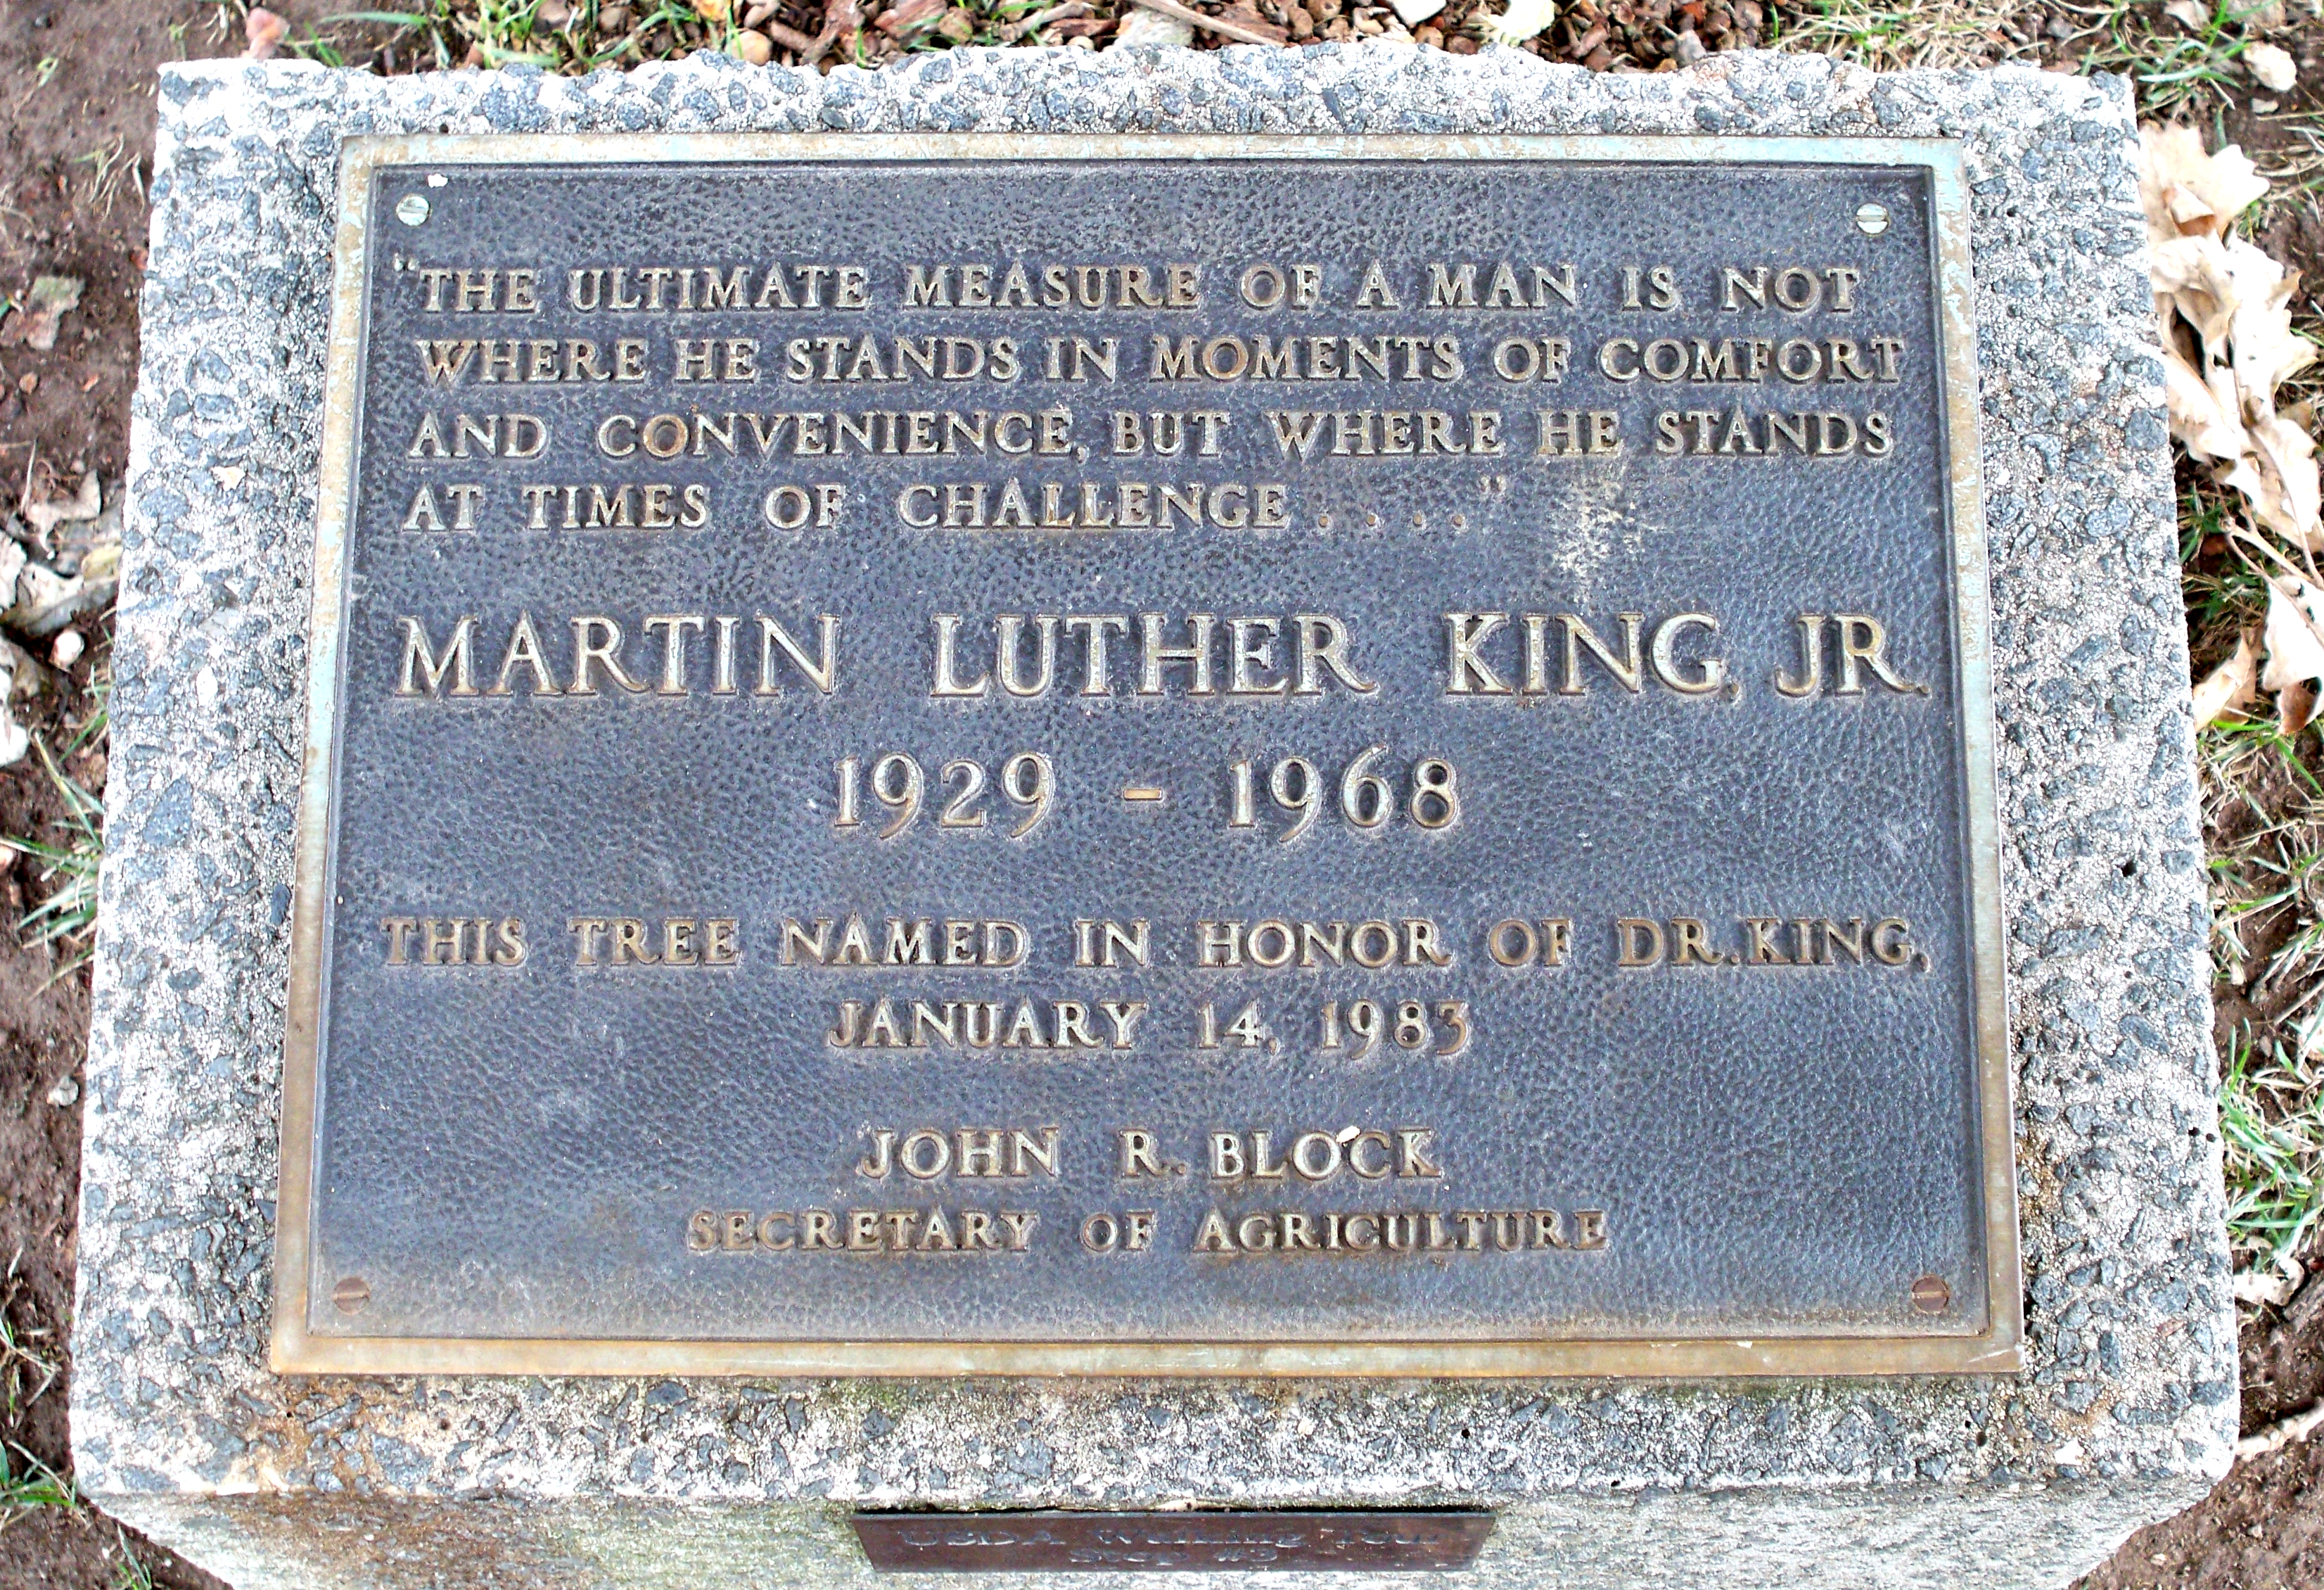 Martin luther king jr date of birth in Sydney